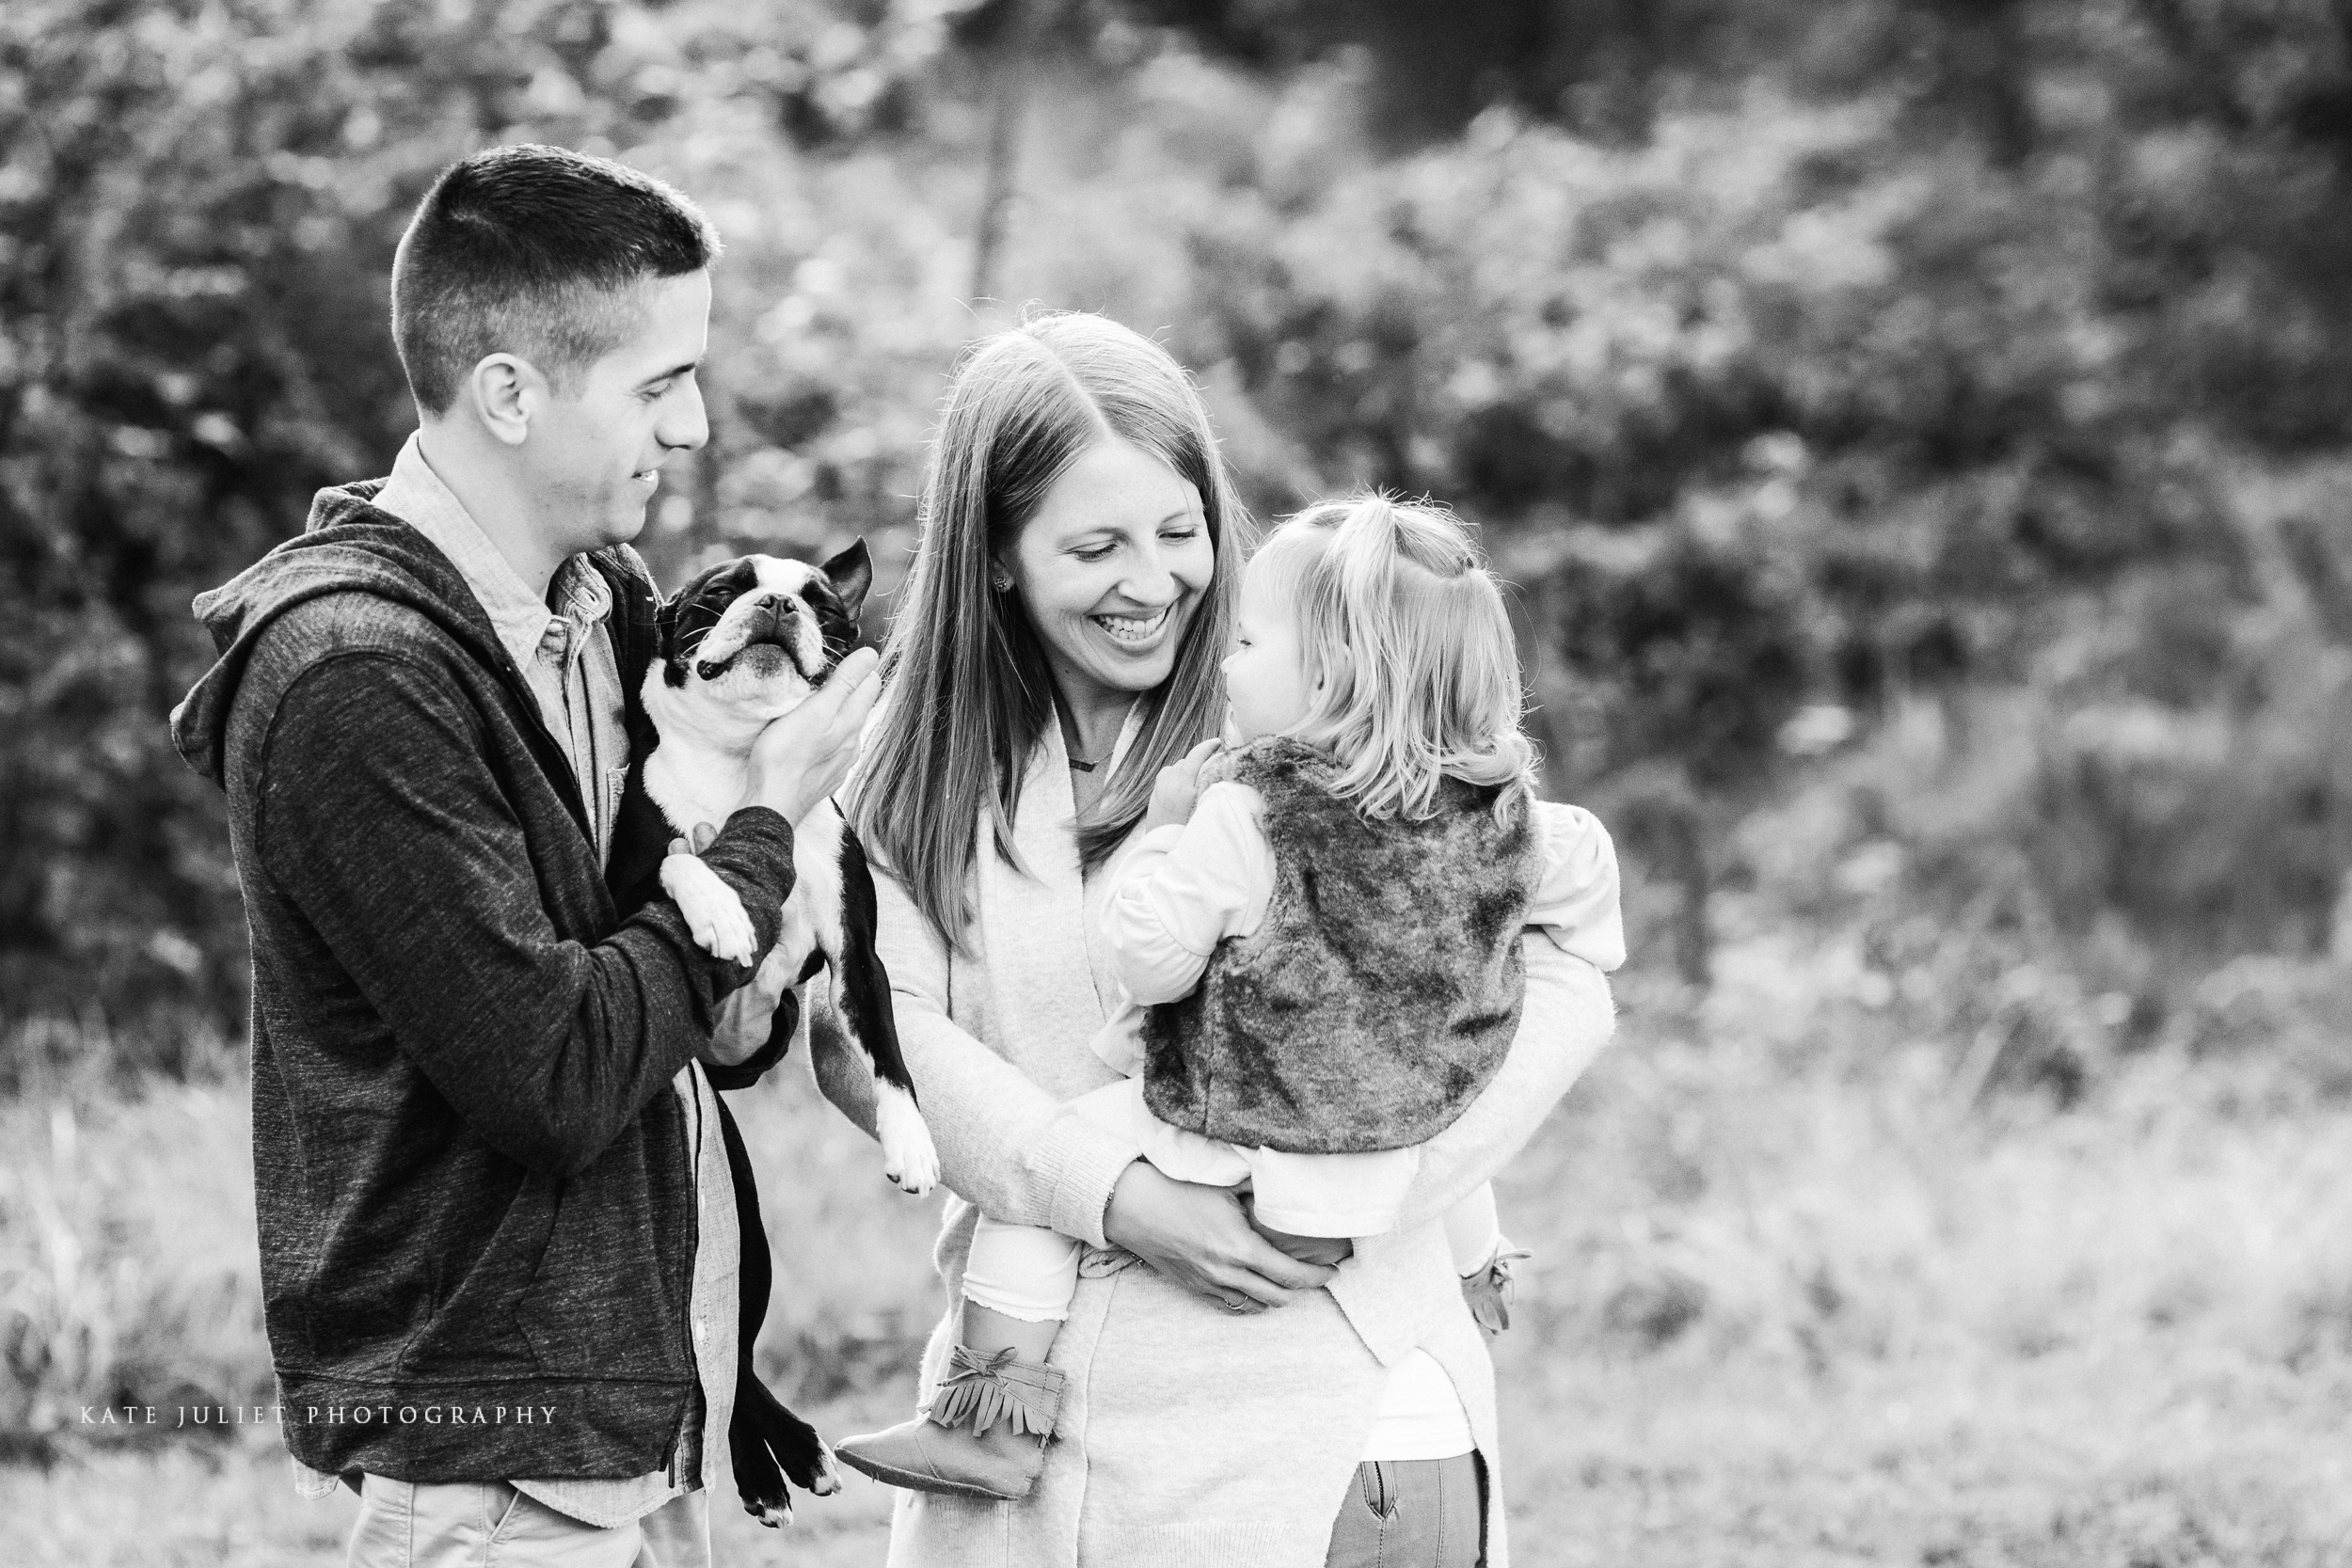 Loudoun County VA Family Photographer | Kate Juliet Photography